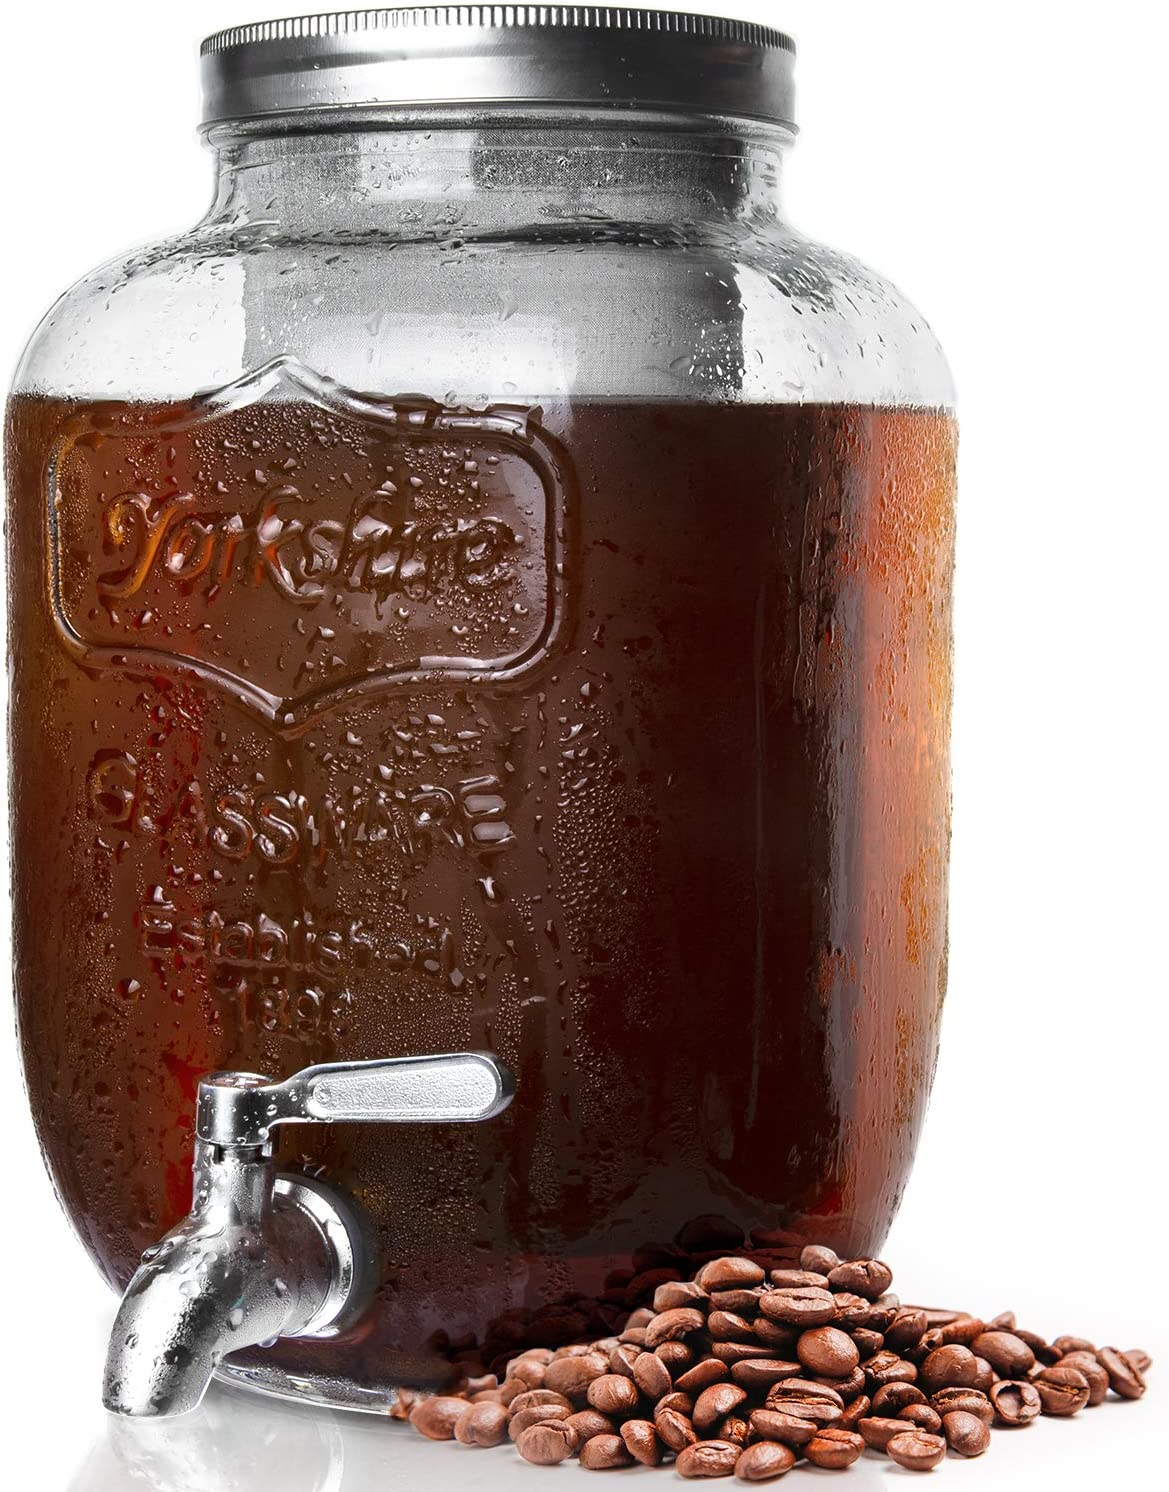 Cold Brew Coffee Maker,1 Gallon Cold-Brew Maker with Stainless Steel Spigot and Removable Mesh Filter,Cold Brew Pitcher with Lid,Extra Thick Gallon Iced Coffee Maker,Large Glass Carafe for Coffee